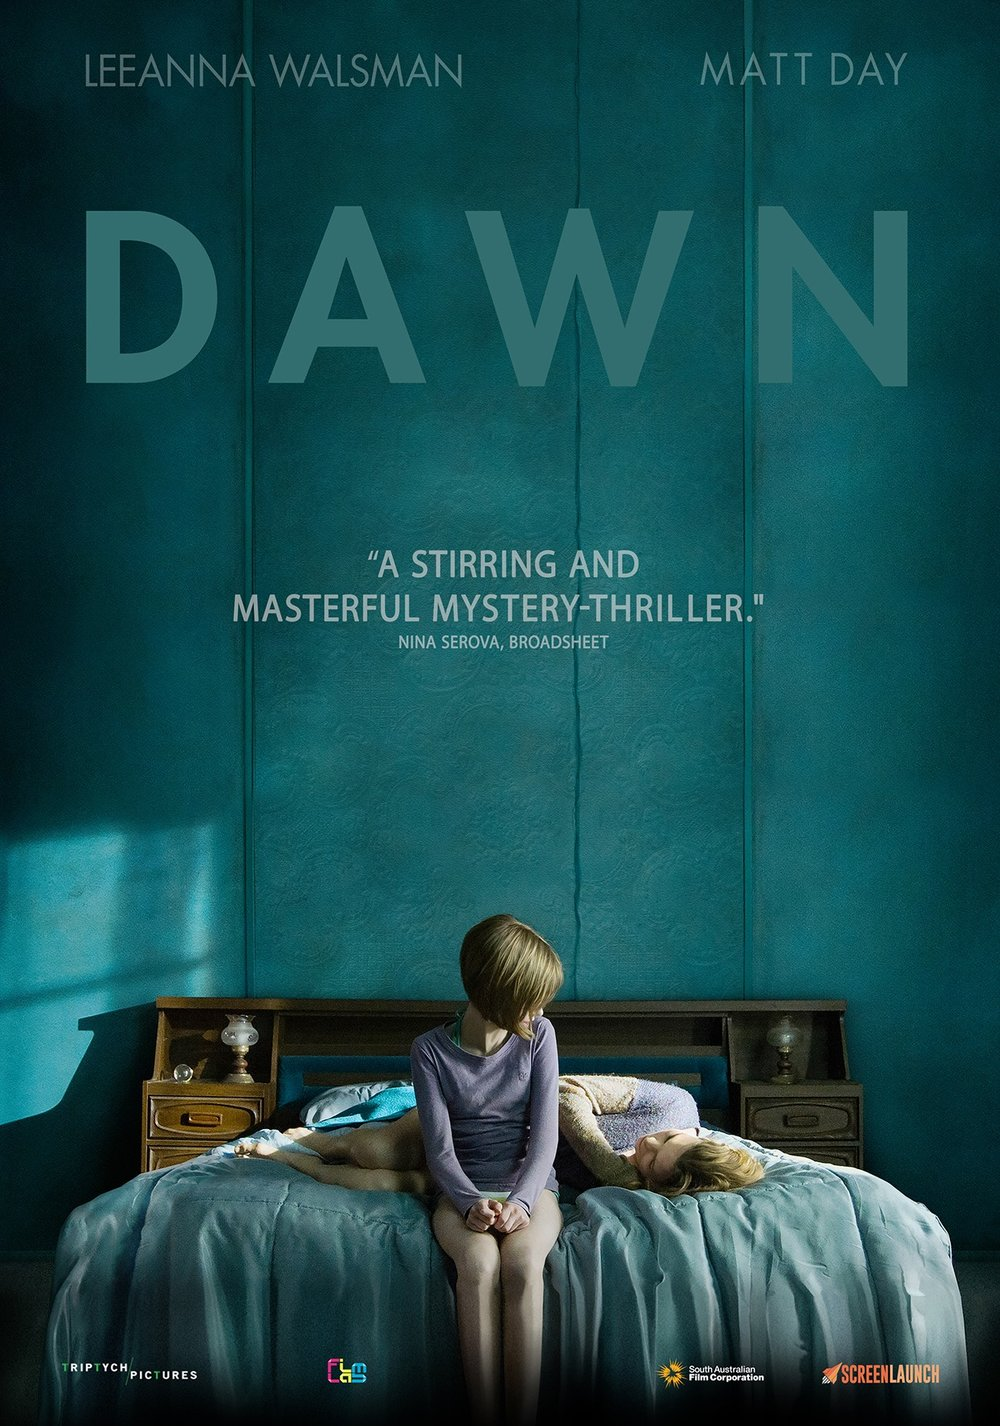 DAWN - tells the story about the nature of love between a mother and her daughter. After committing a violent assault on a familiar stranger, Dawn takes to the road with her daughter in tow. Finding seclusion in a remote motel, and desperate to keep her daughter hidden, Dawn enters into a risky liaison with a local cop. Dawn is hiding from something far greater than her words or actions reveal. Ultimately, her desperation becomes untenable and the past closes in with a devastating twist.Awards & FestivalsDAWN (titled TOUCH for festival release) premiered  at the Sydney Film Festival in 2014 and internationally at Cannes Cinephiles in 2015. DAWN was selected as the opening night film for the Manchester International Film Festival and awarded Best Feature Film at the Asia Pacific Film Festival in 2015.